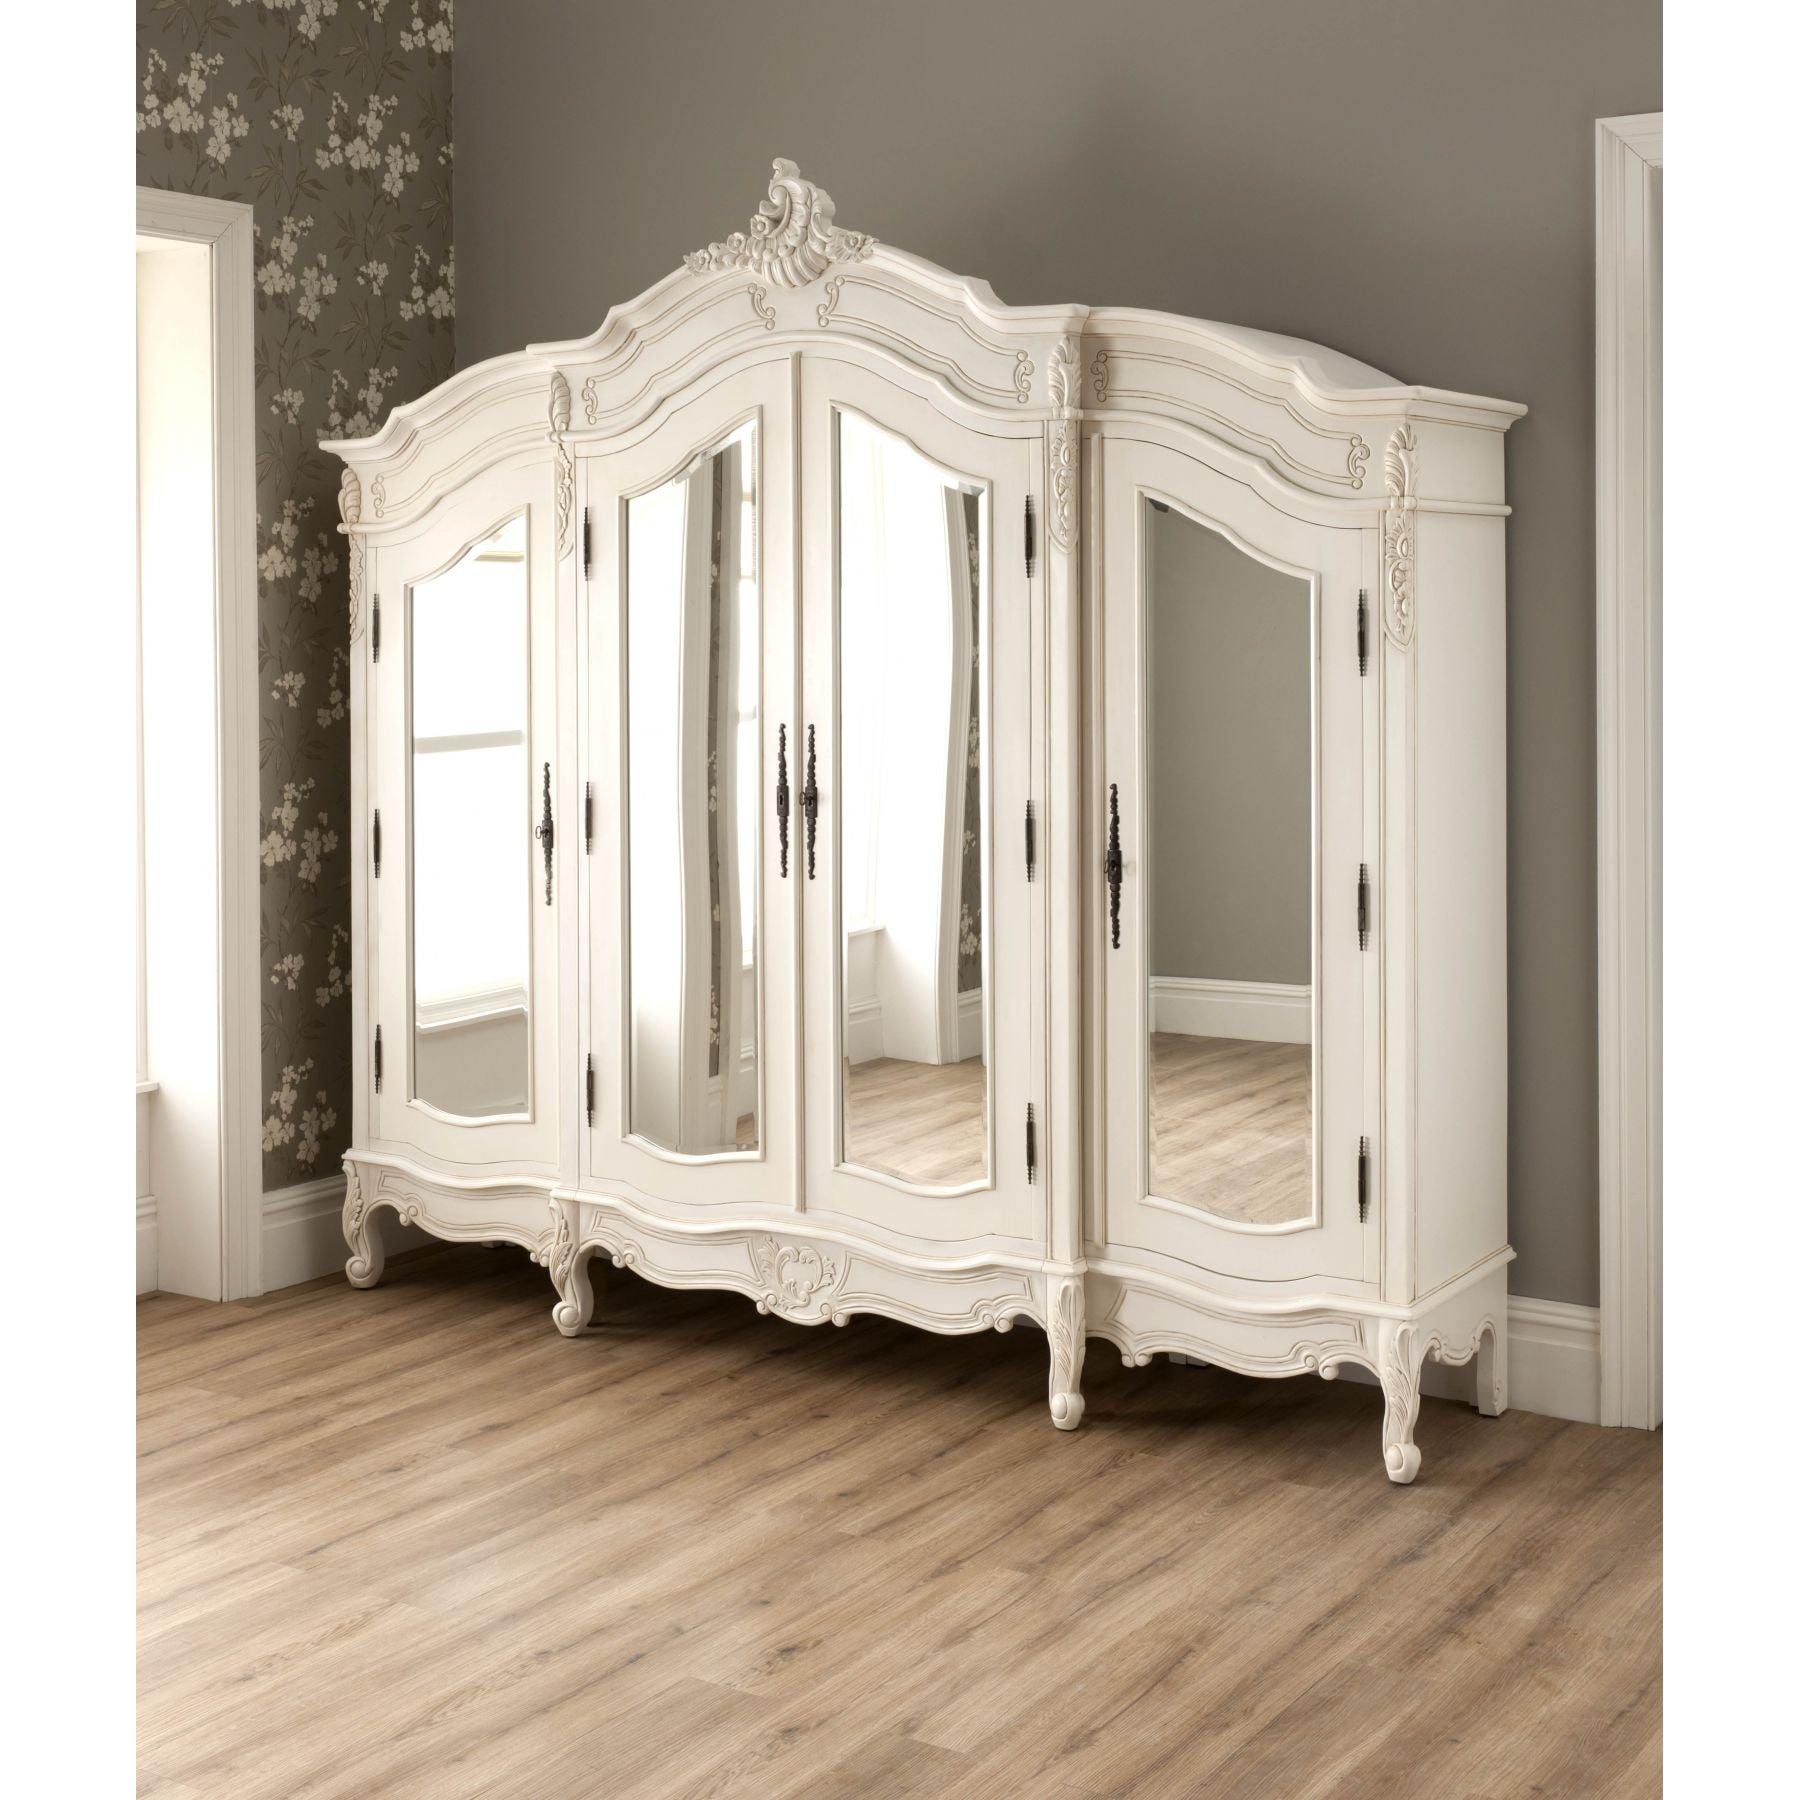 la rochelle antique french wardrobe rococo furniture. Black Bedroom Furniture Sets. Home Design Ideas